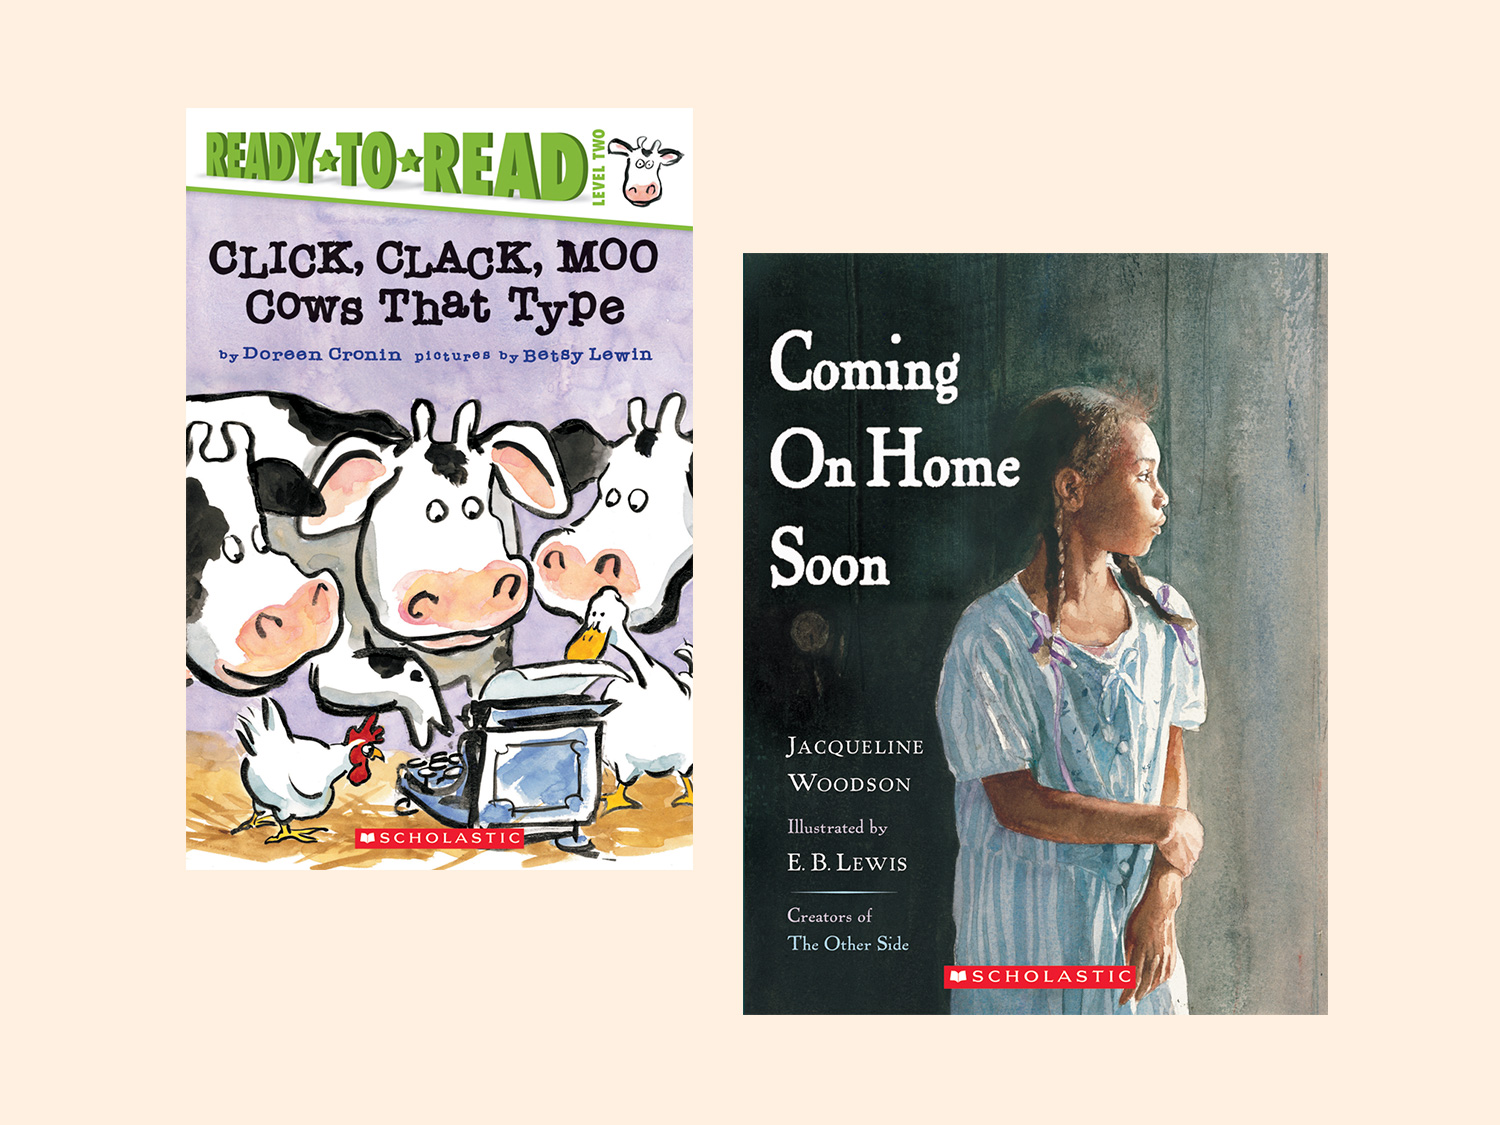 Caldecott Medal Winning Books For First And Second Grade